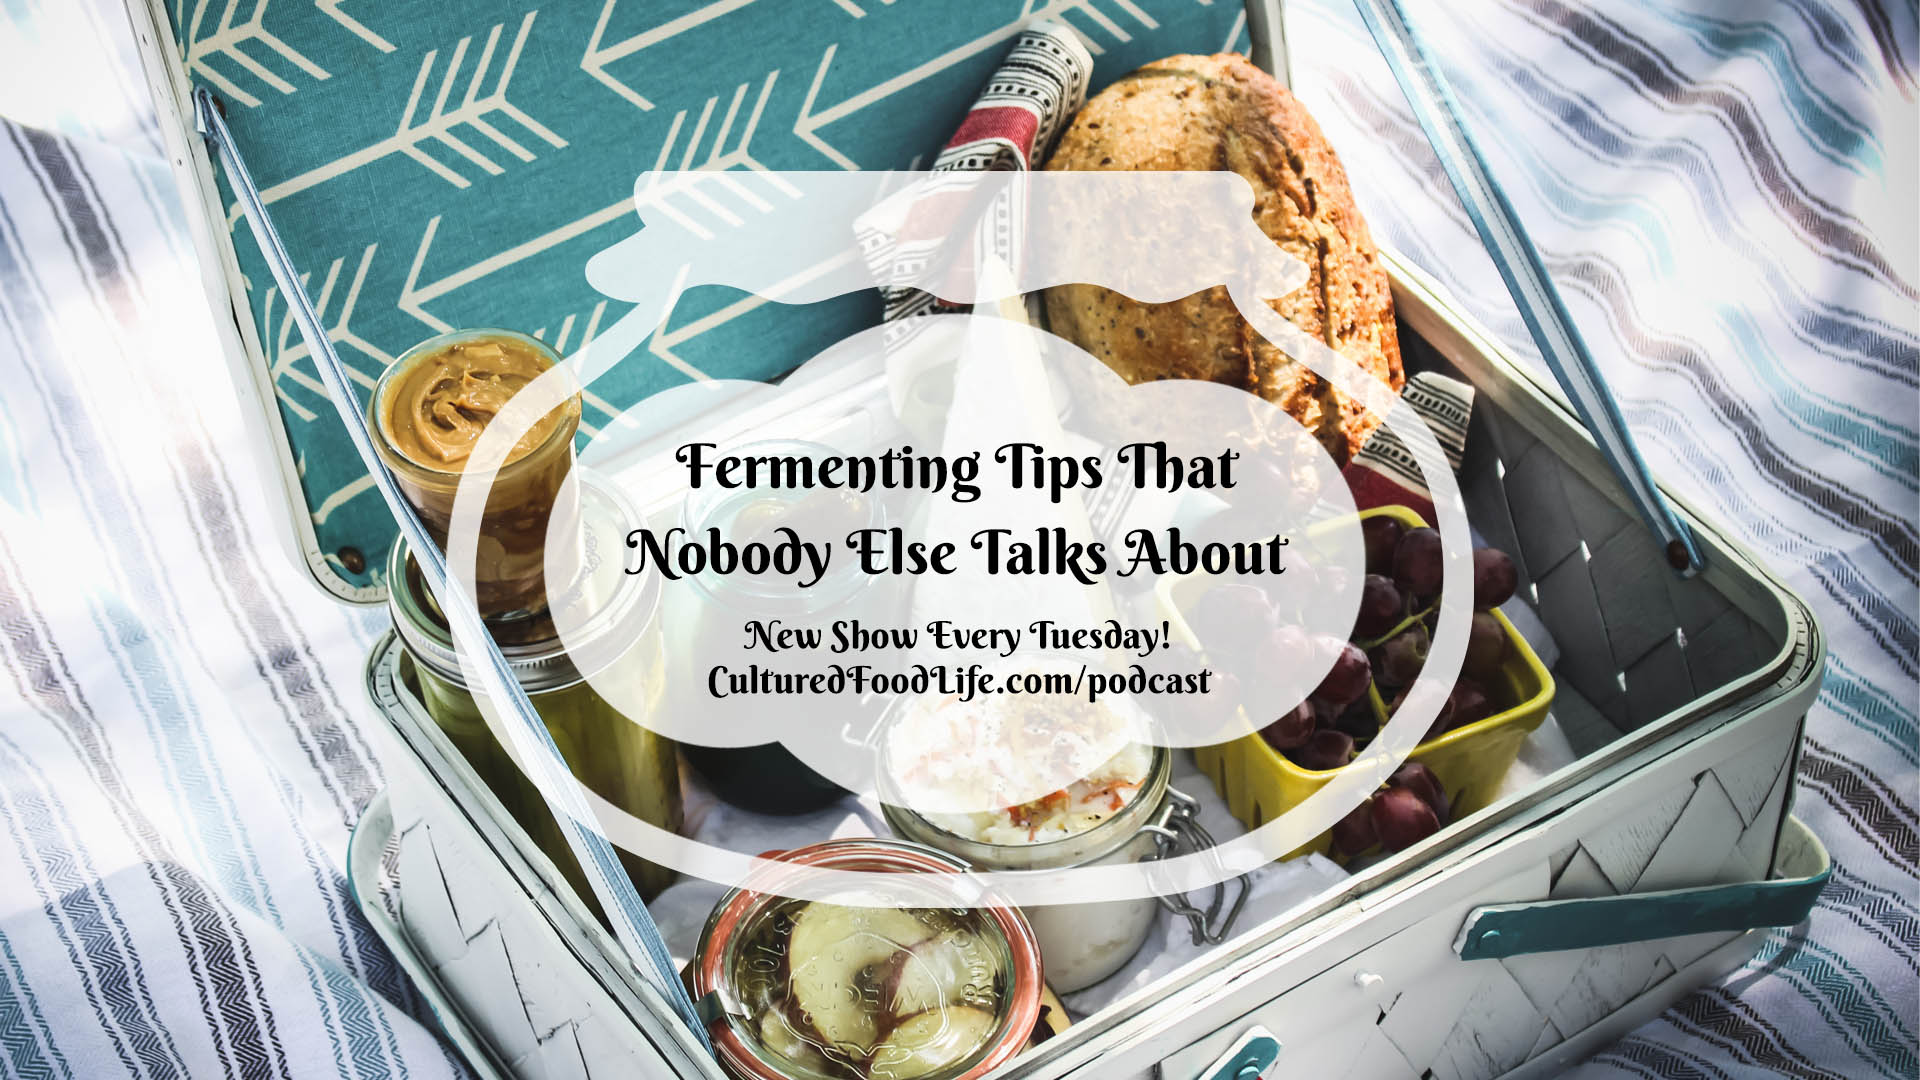 Fermenting Tips That Nobody Else Talks About Full